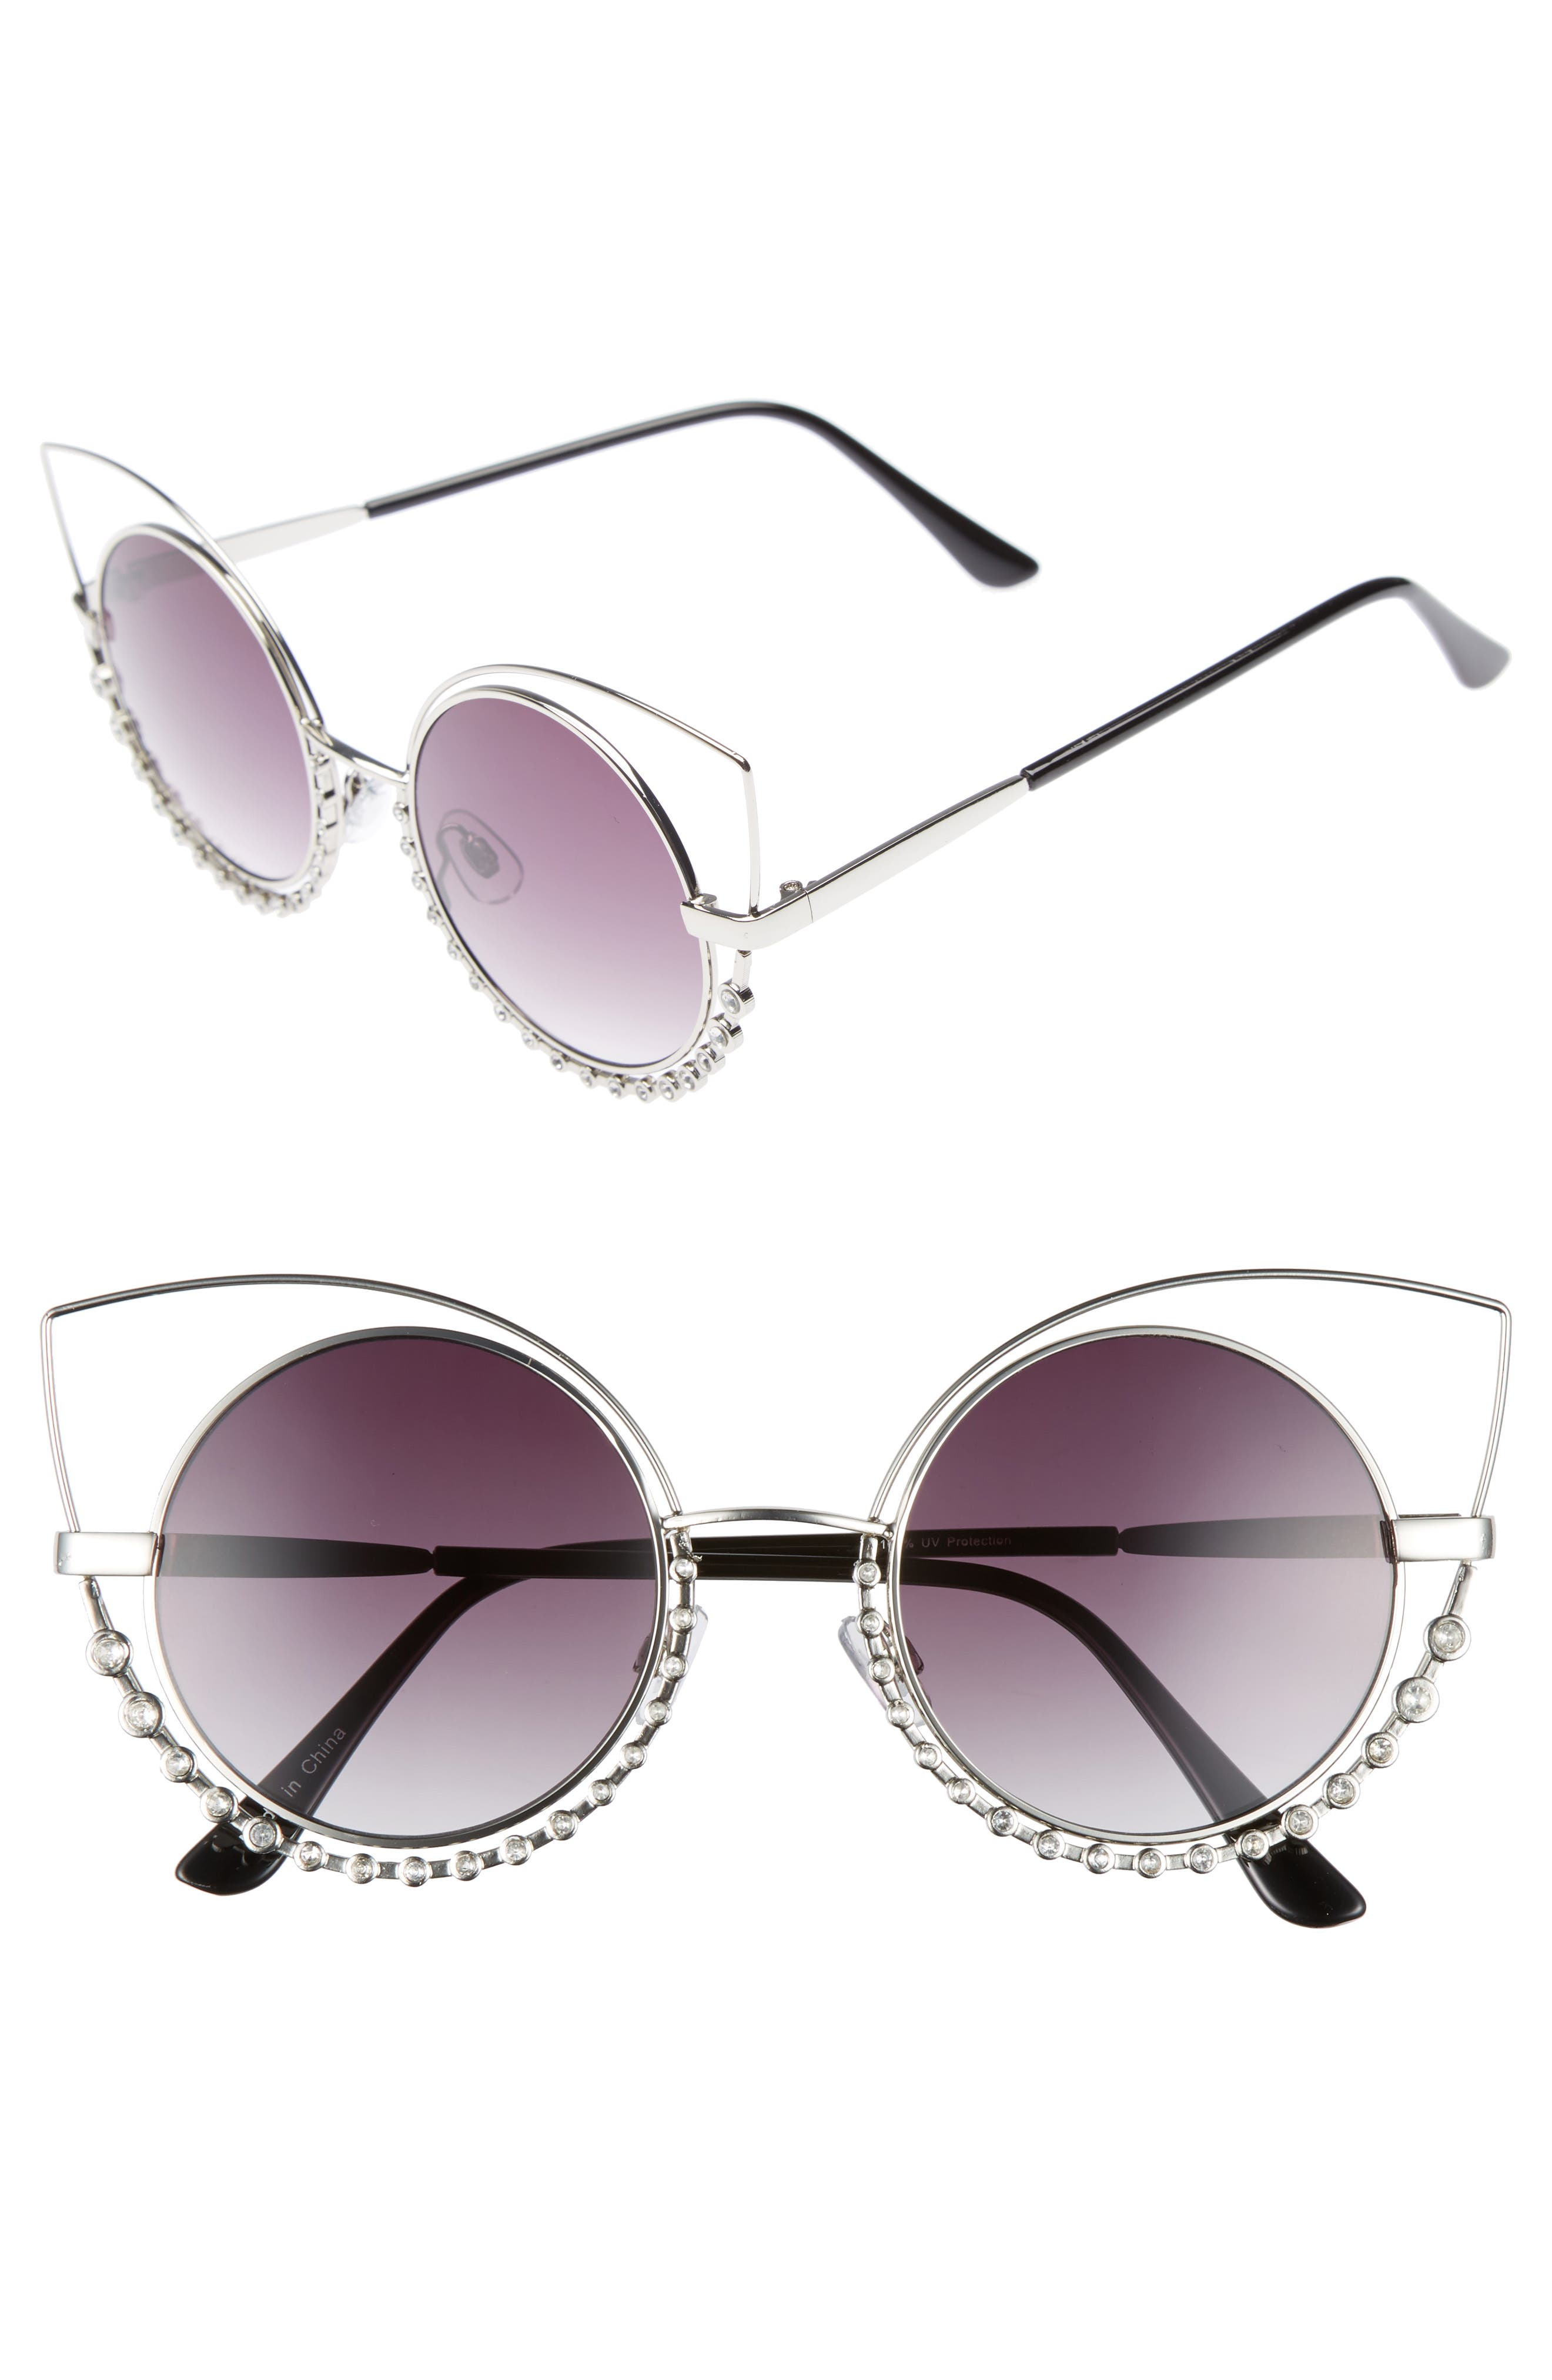 55mm Studded Round Sunglasses,                         Main,                         color, 040